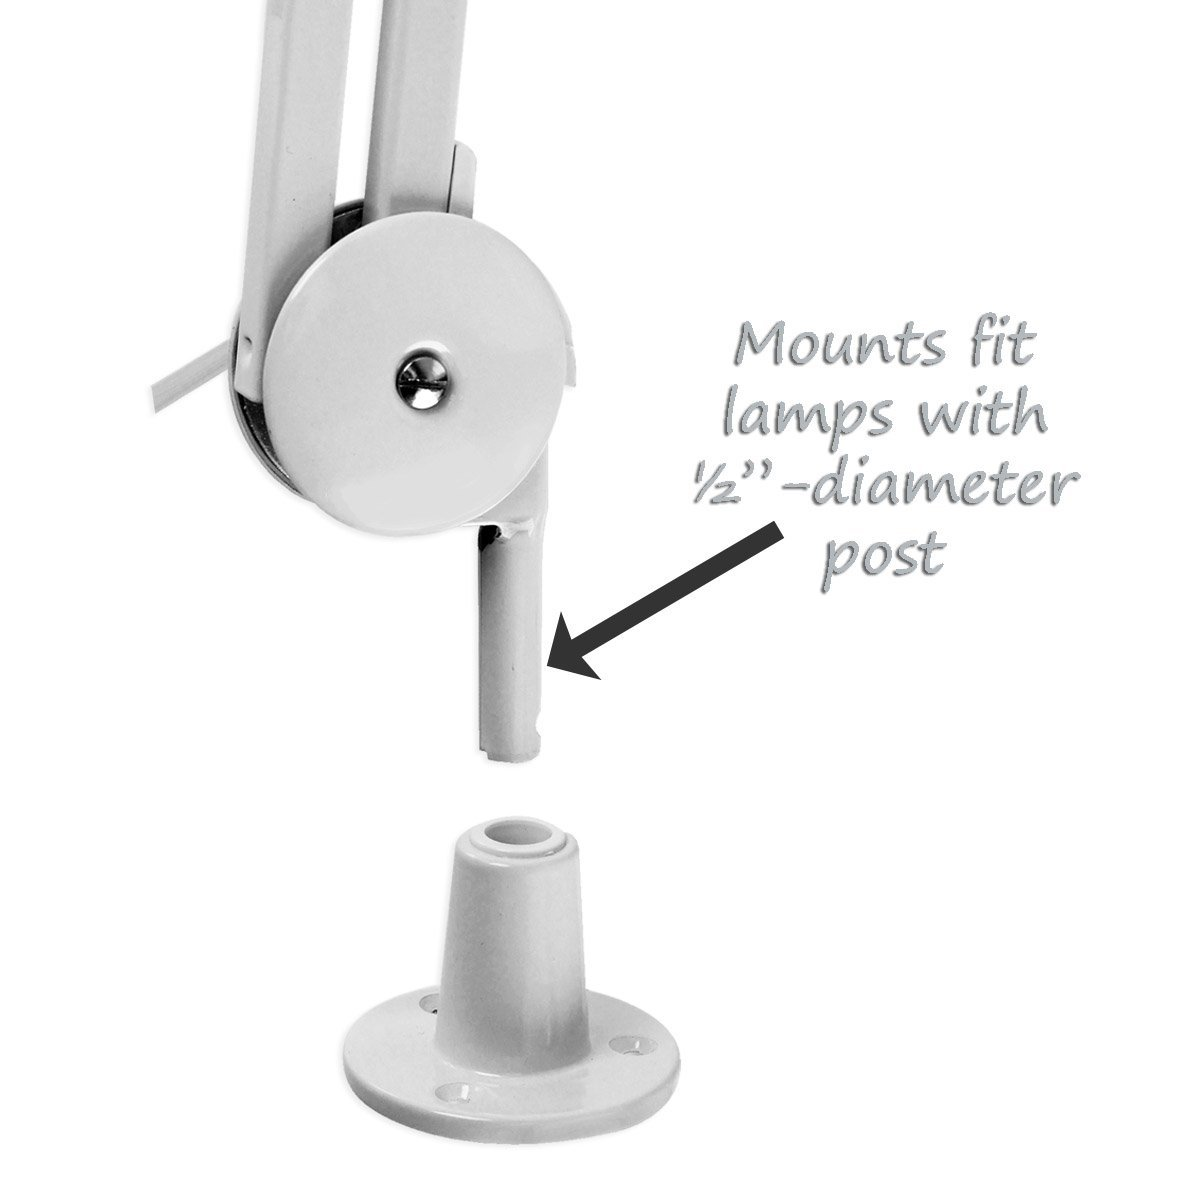 Magnifier Lamp Work Light Mounting Bracket Clamp - Choose from 4 Styles by Pro Magnify (Image #2)